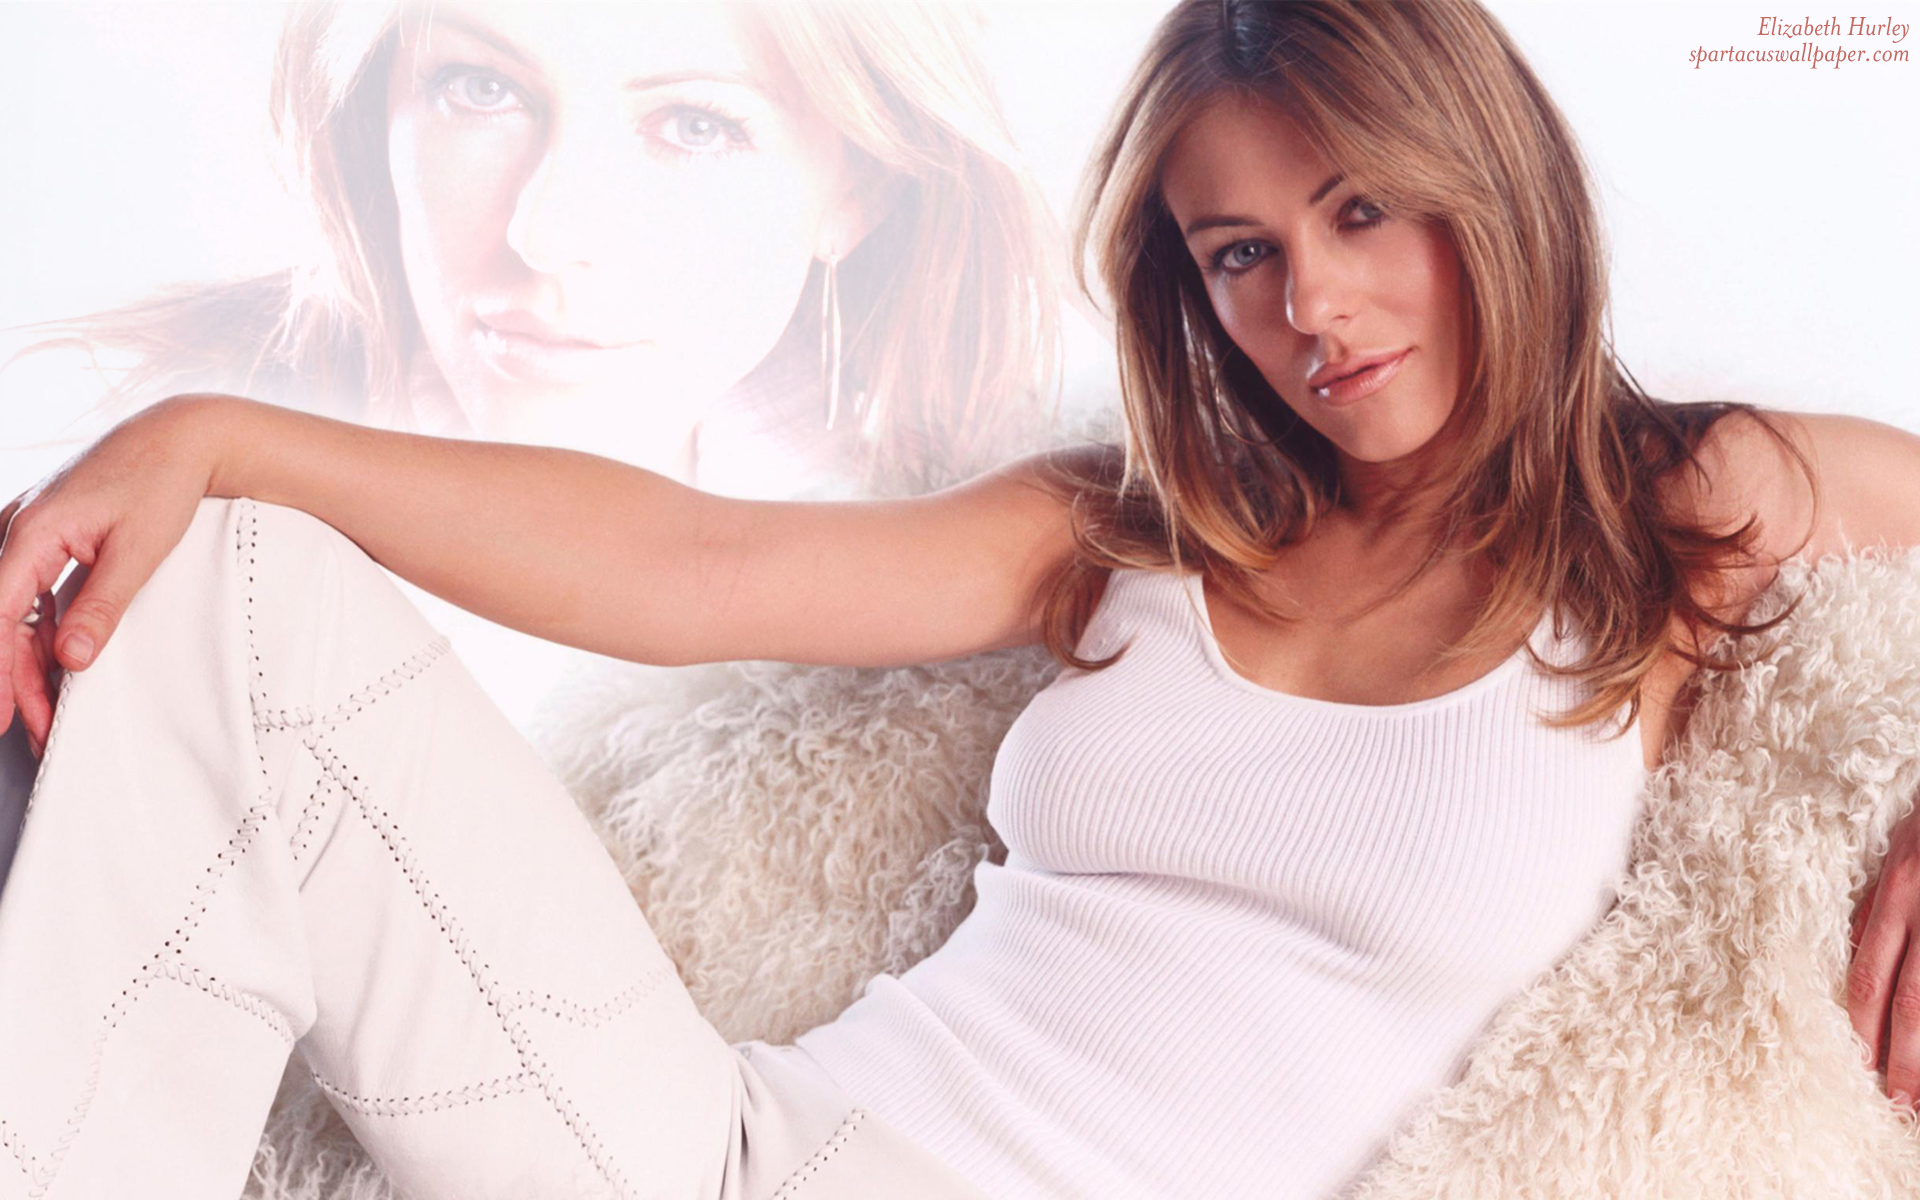 Elizabeth Hurley III Desktop Backgrounds Mobile Home 1920x1200